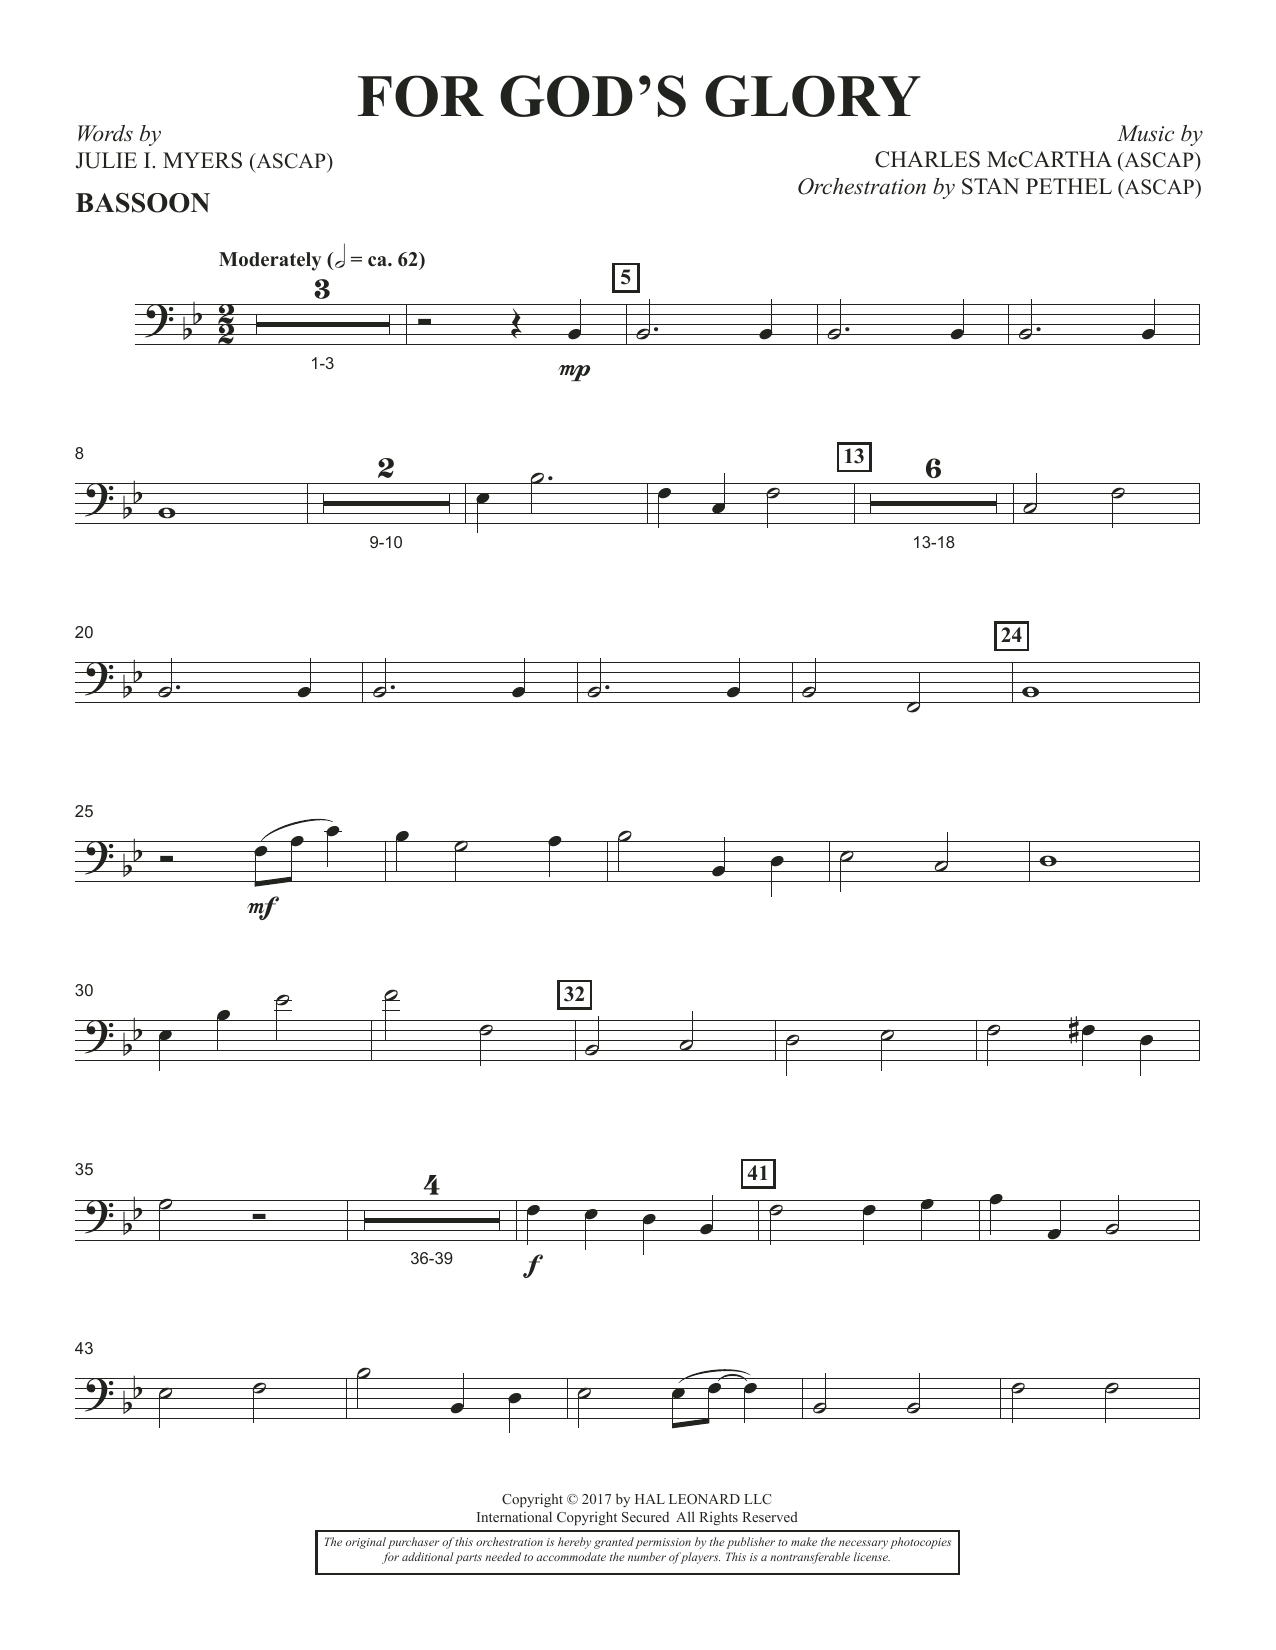 Charles McCartha For God's Glory - Bassoon sheet music notes and chords. Download Printable PDF.